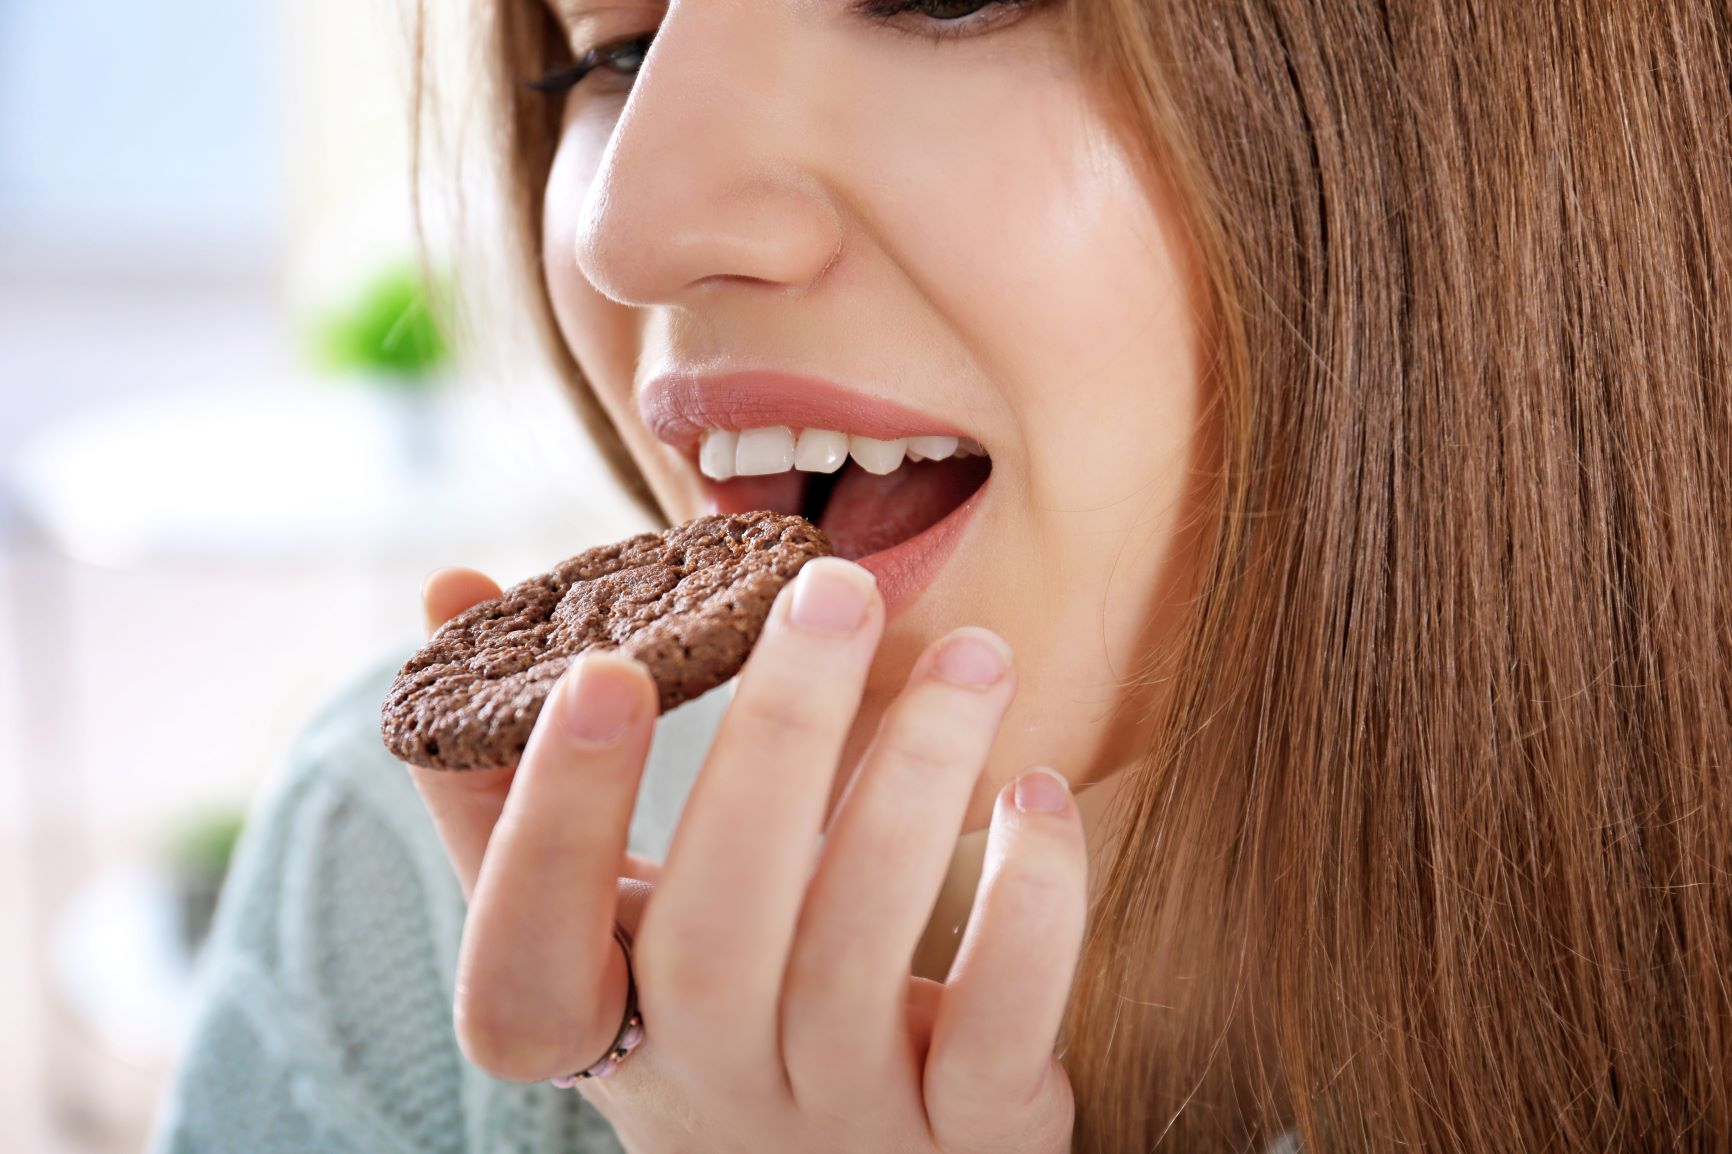 Interested in intuitive Eating? You must do this first!